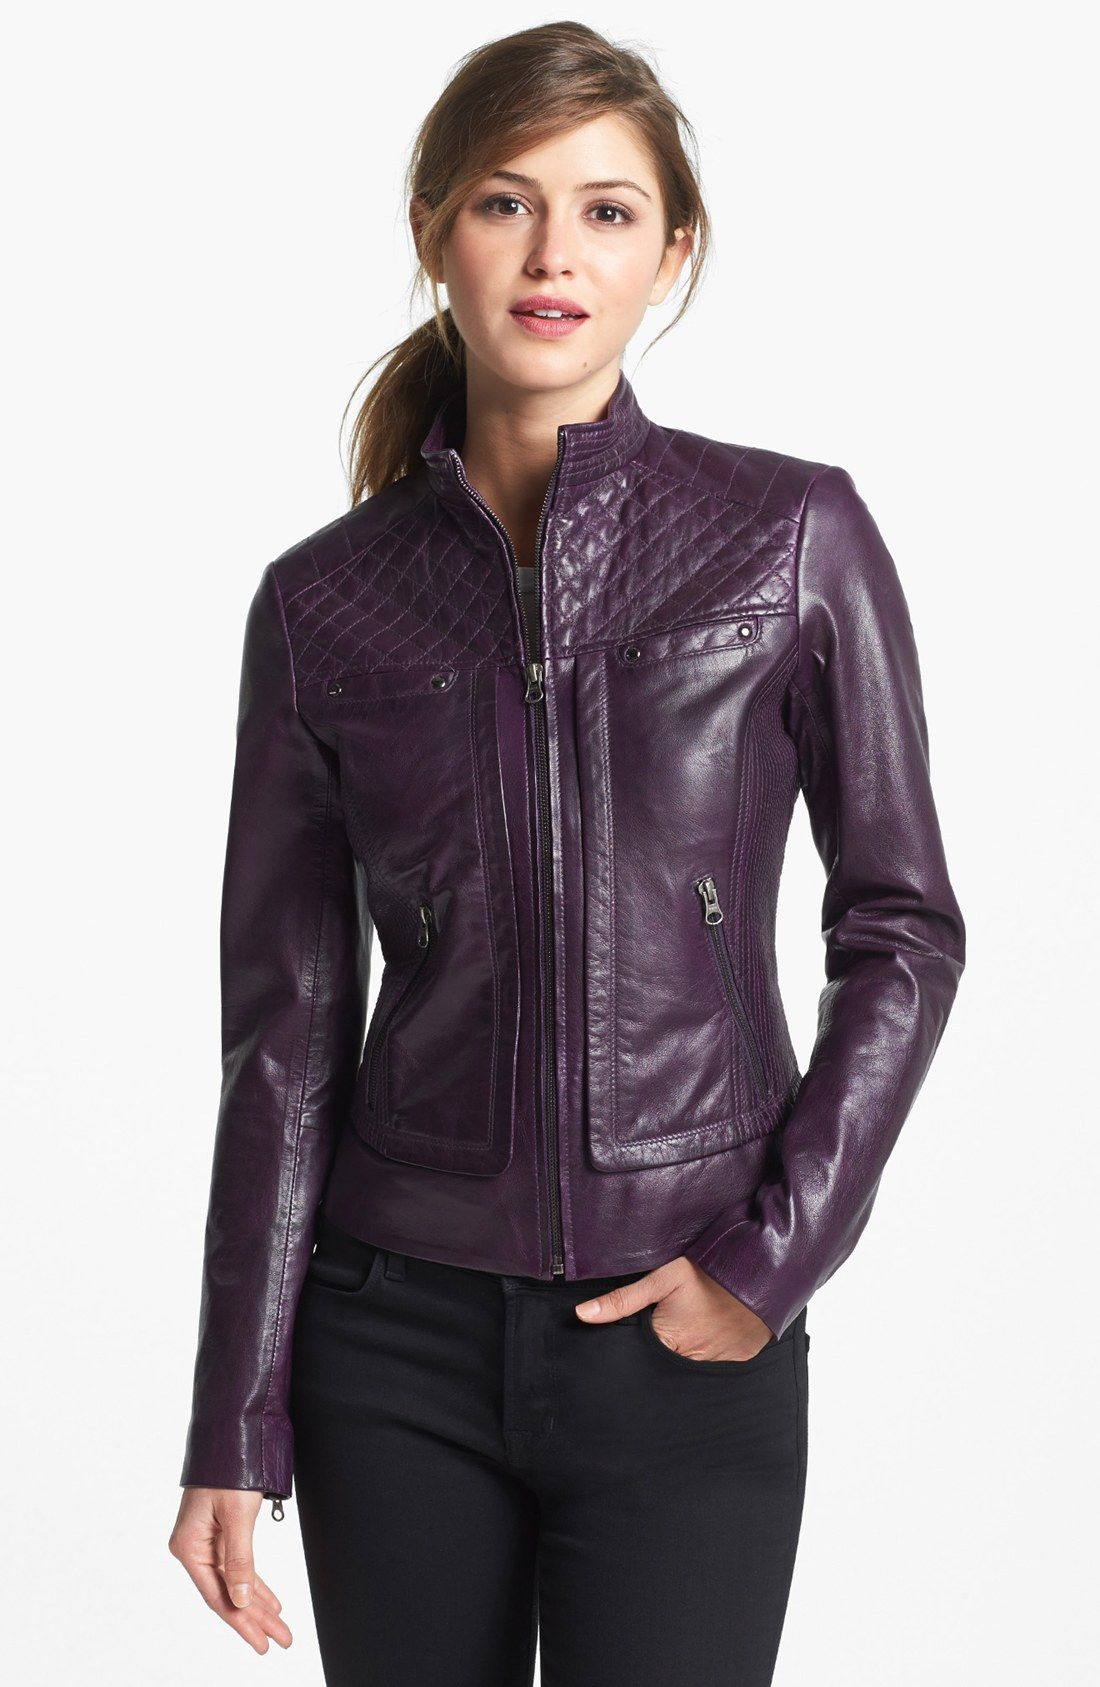 DRESS TRENDS | Women's leather jacket trends spring 2016 | http ...